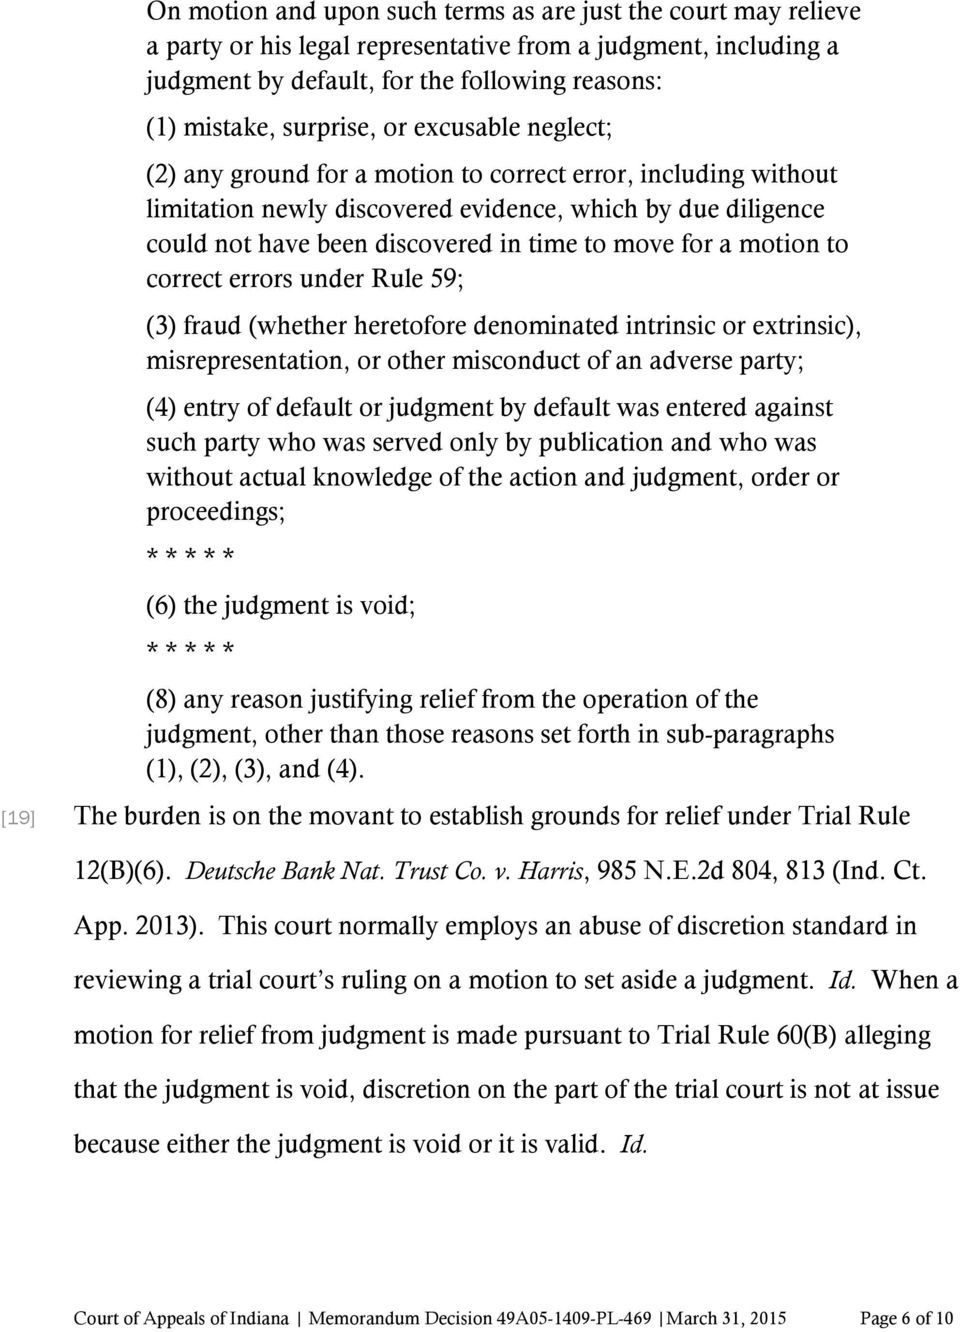 motion to correct errors under Rule 59; (3) fraud (whether heretofore denominated intrinsic or extrinsic), misrepresentation, or other misconduct of an adverse party; (4) entry of default or judgment